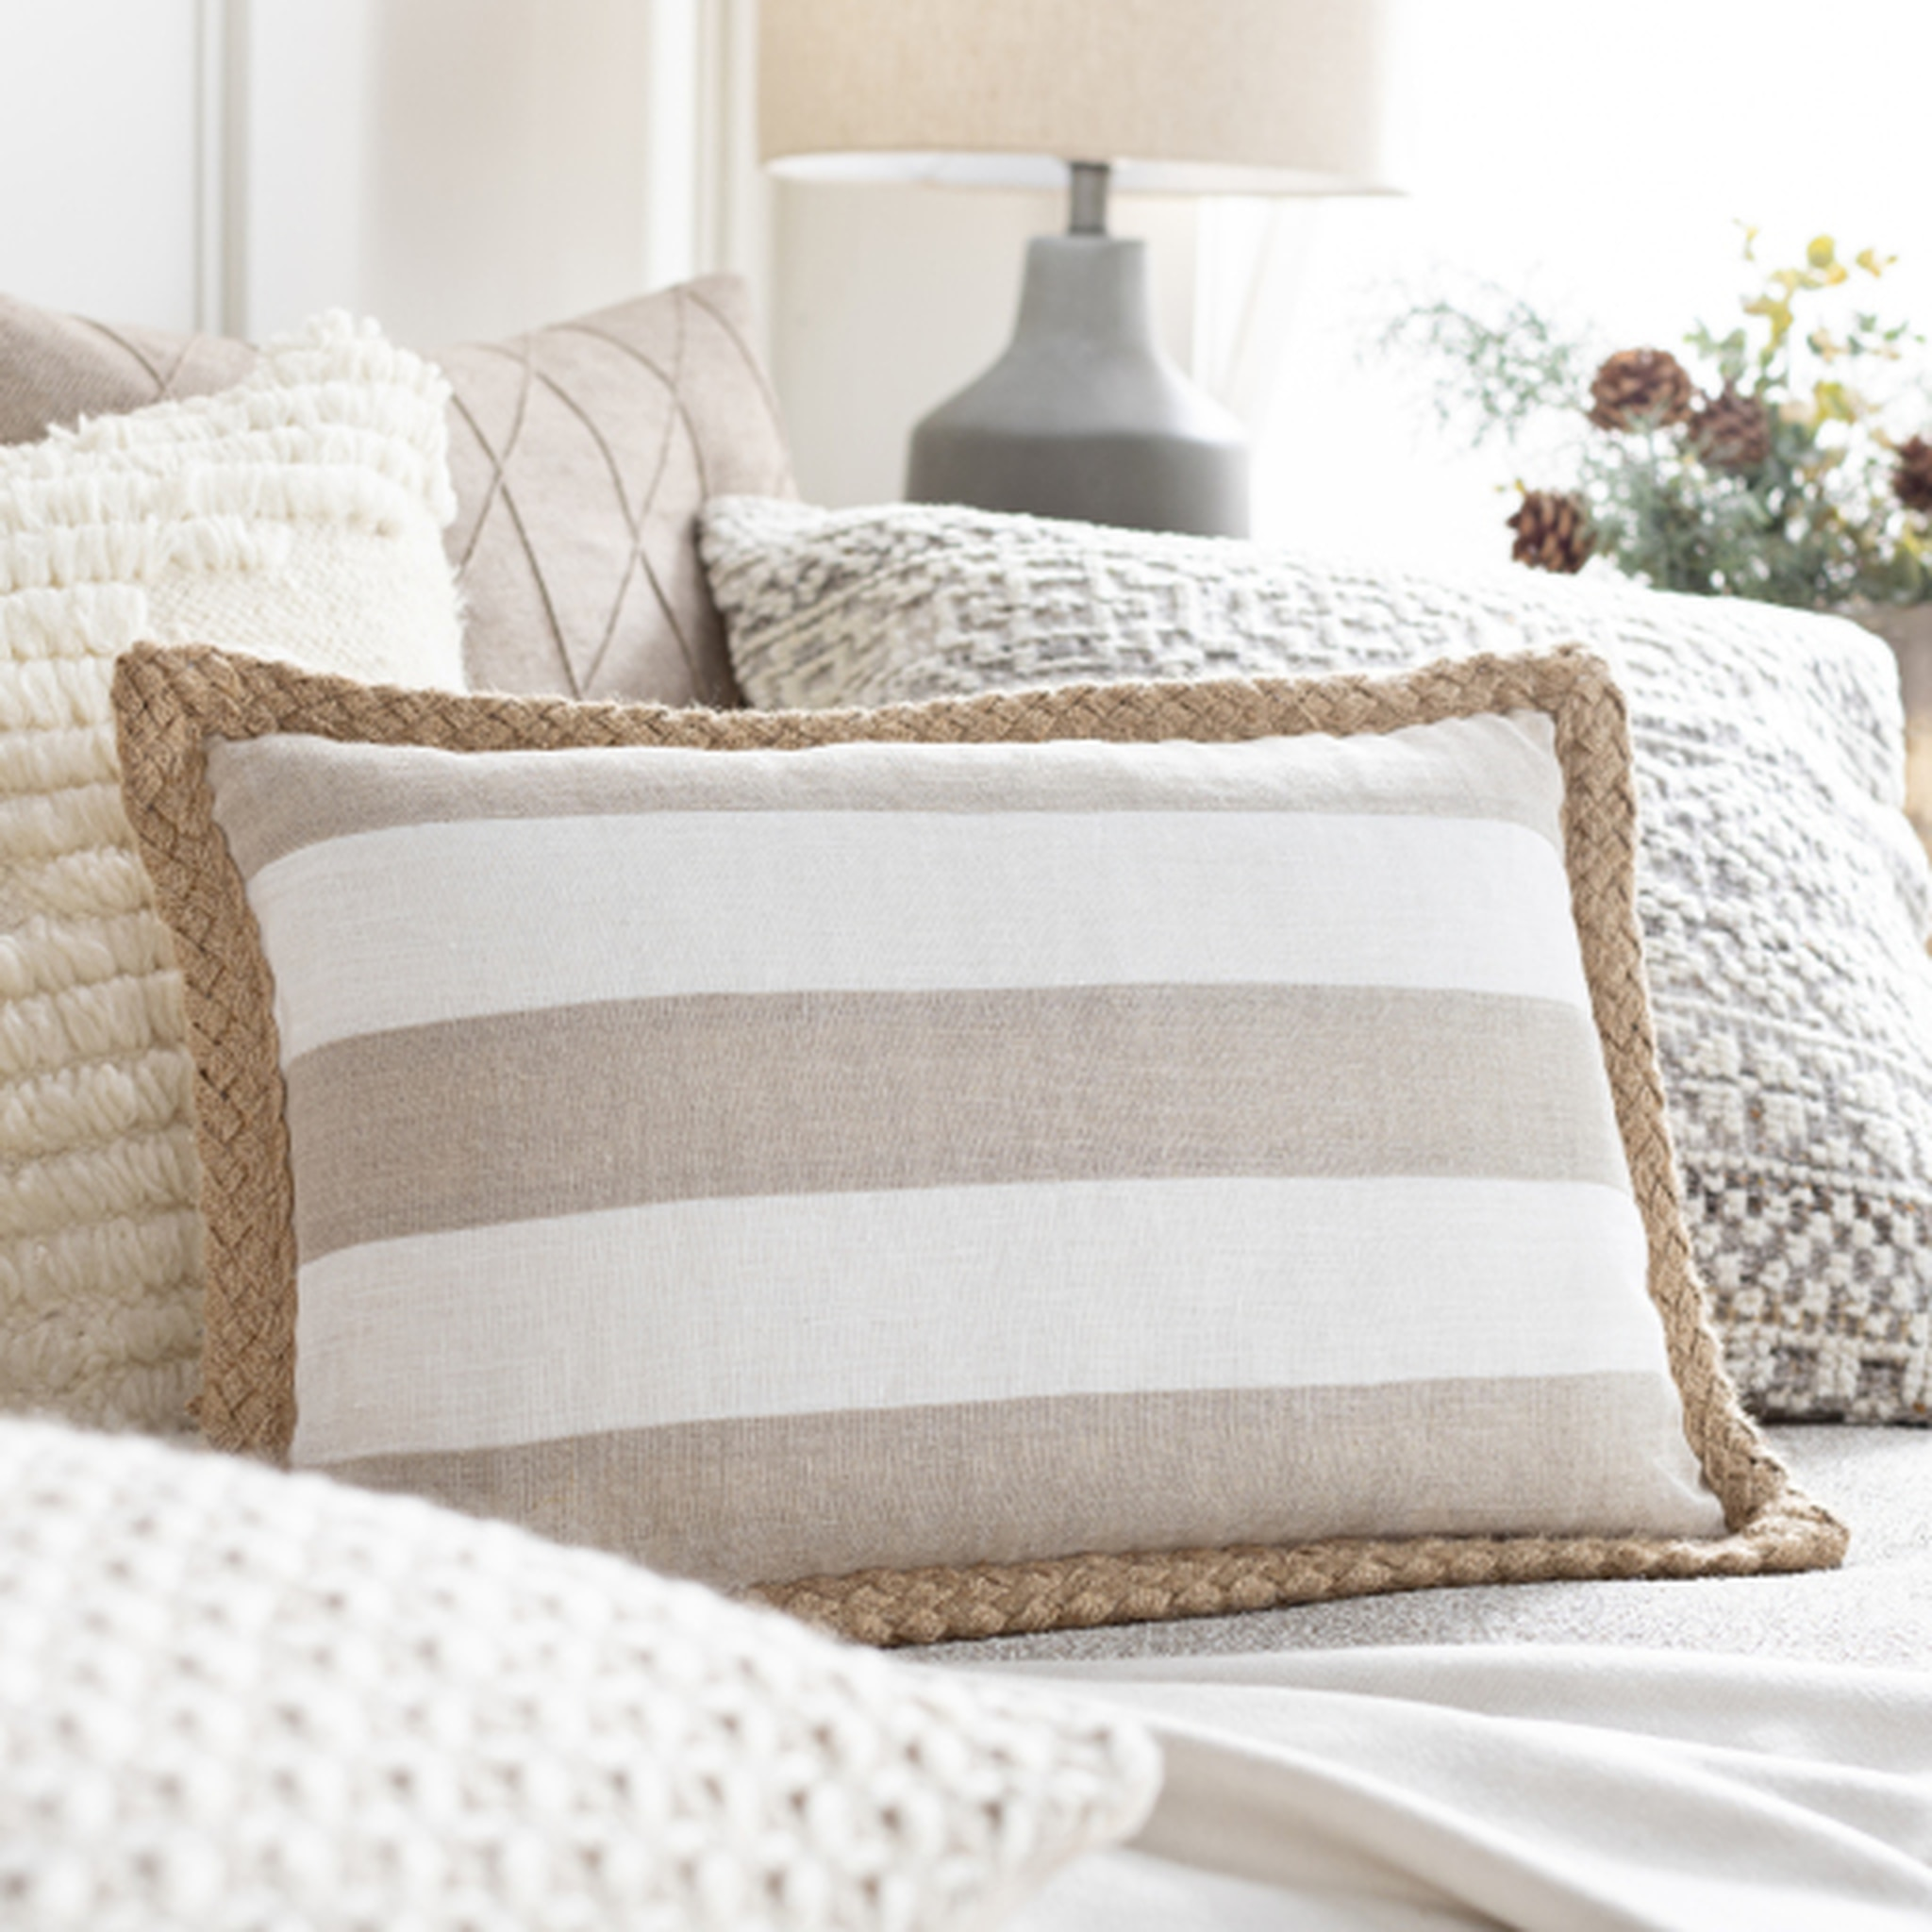 Taupe and Ivory Pillow Options